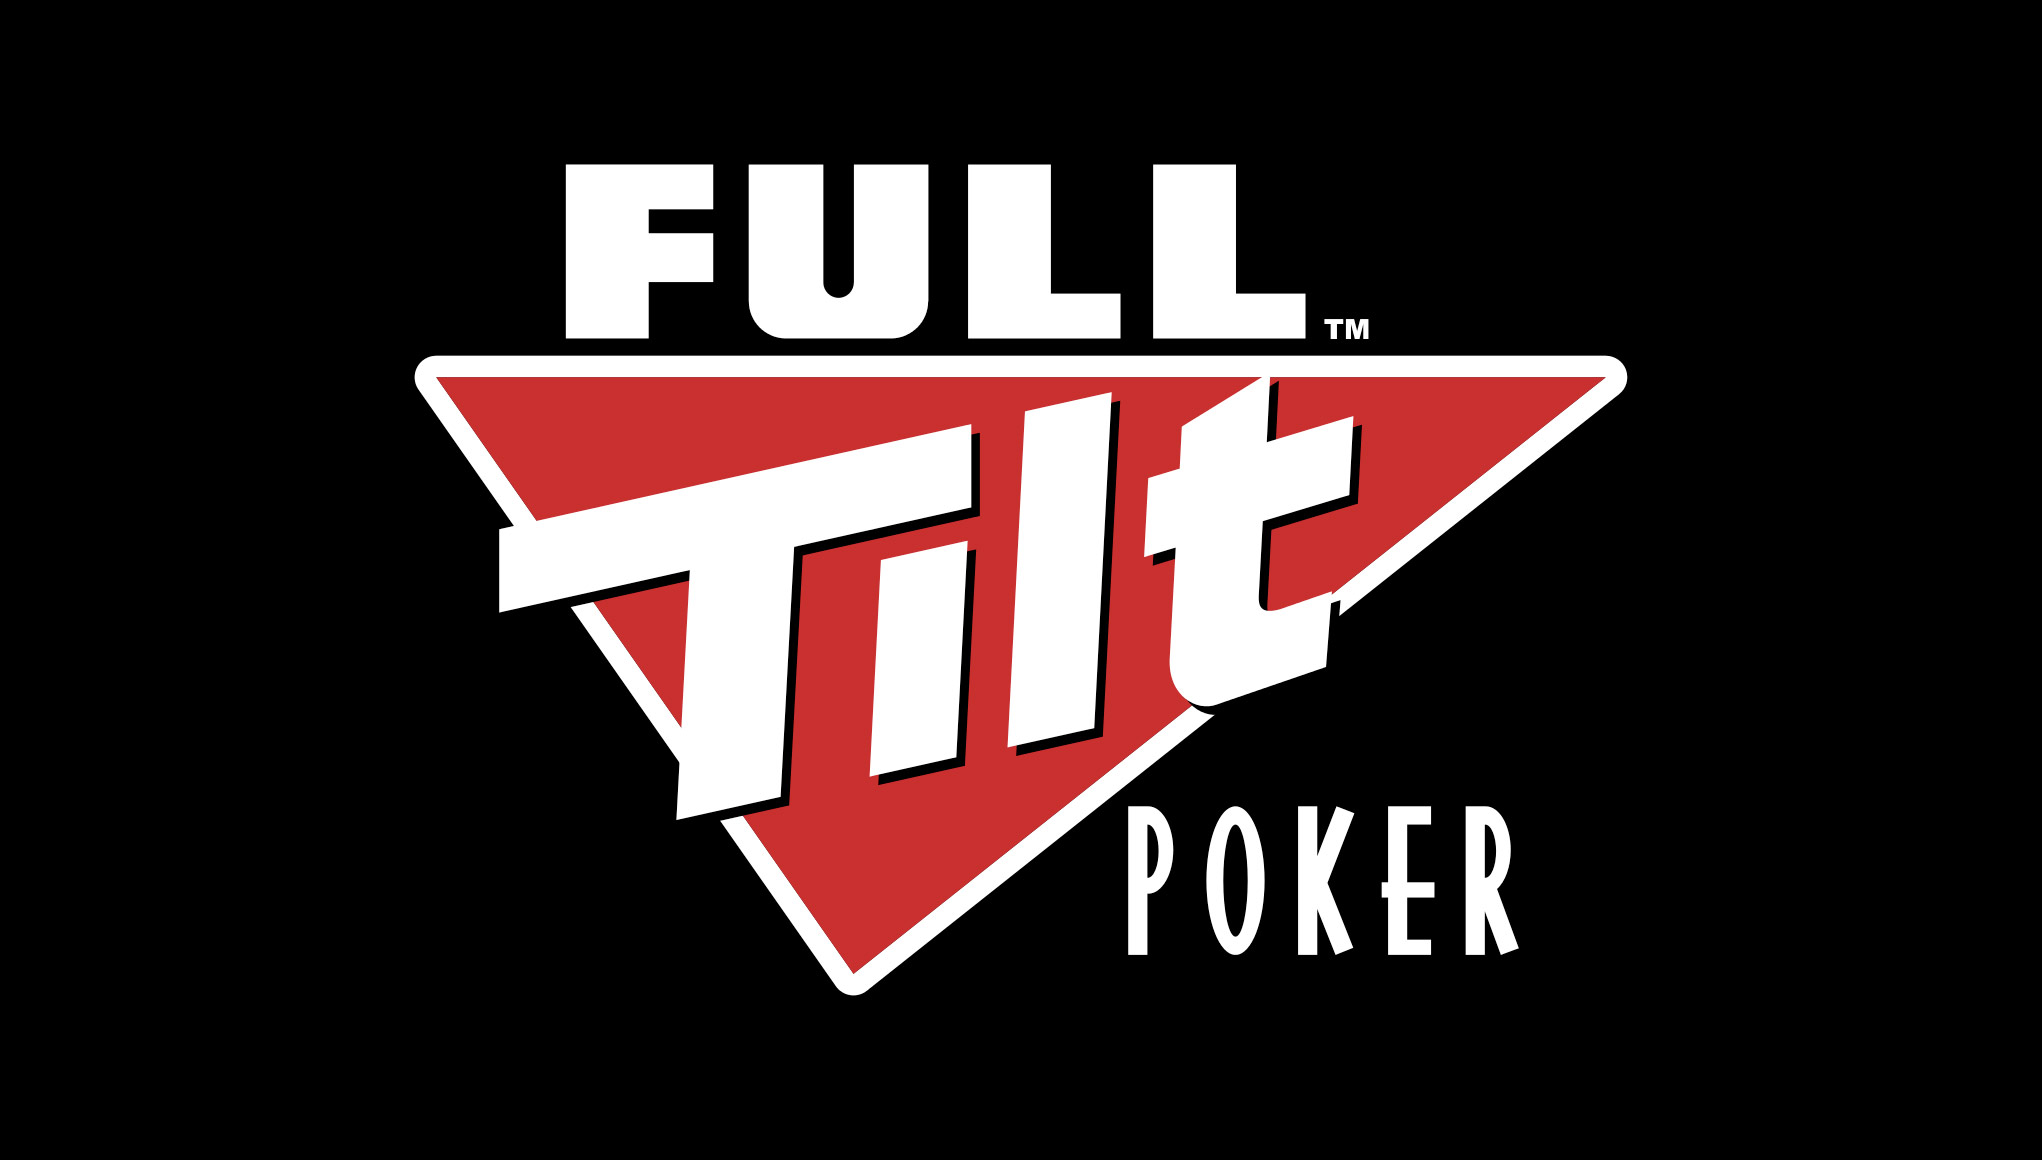 Full tilt blackjack review